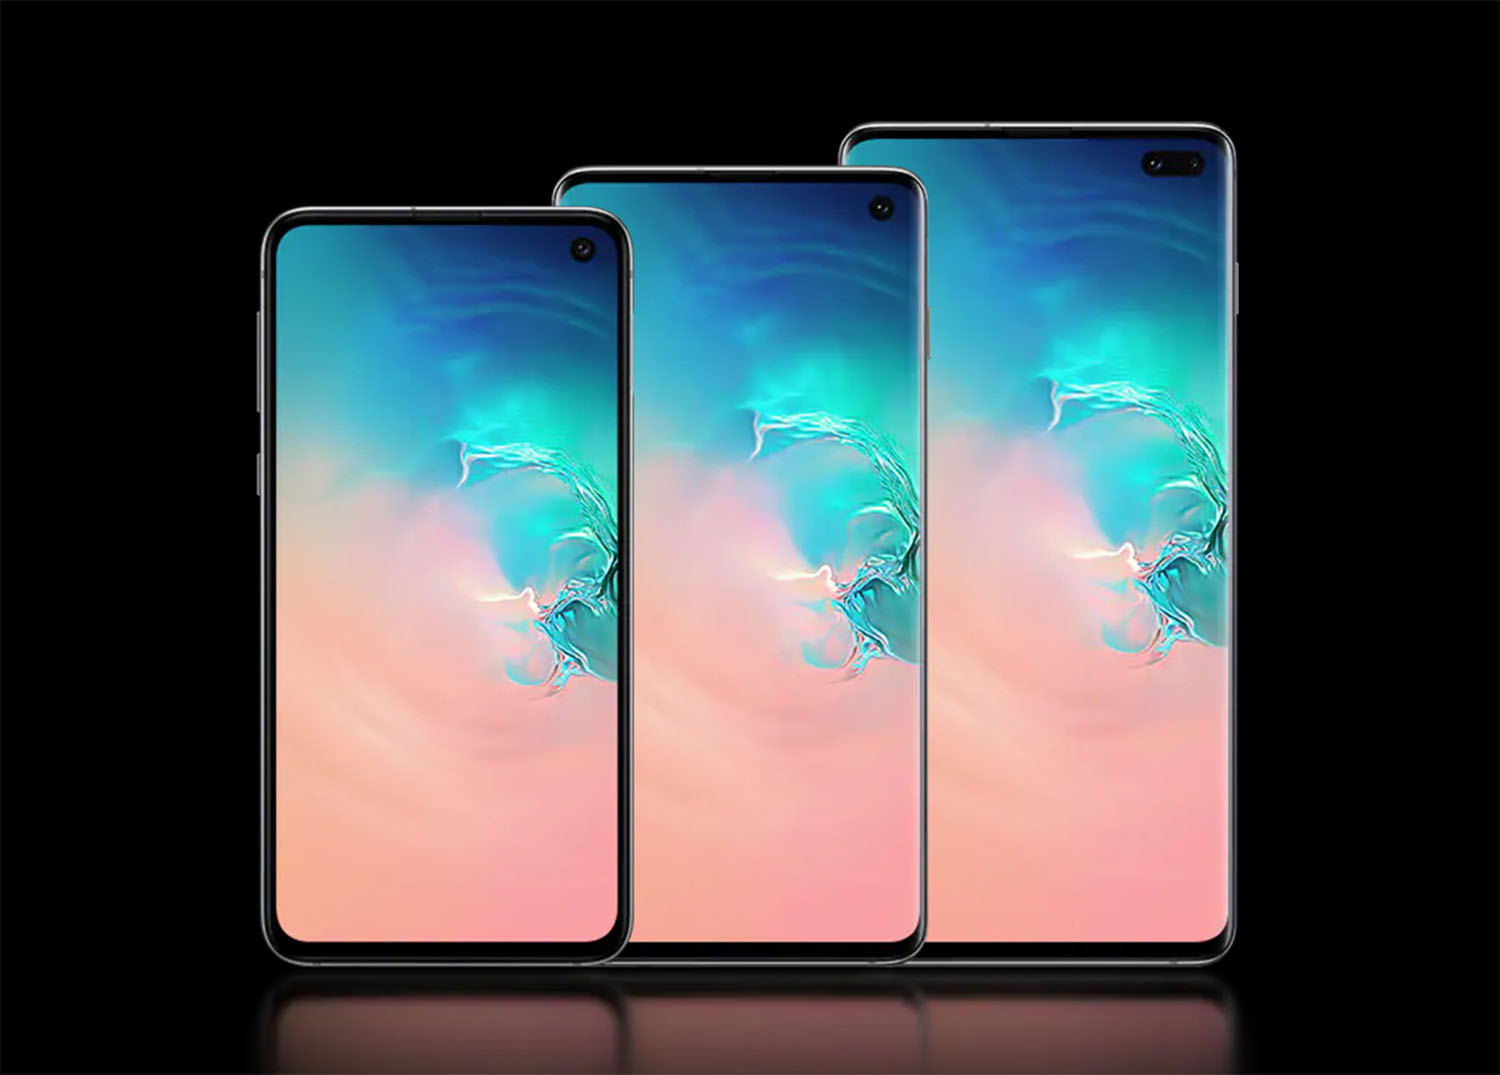 Samsung S Galaxy S10 Galaxy Note 10 Range With Free Galaxy Buds Now Start From 549 99 In Latest Black Friday 2019 Deal